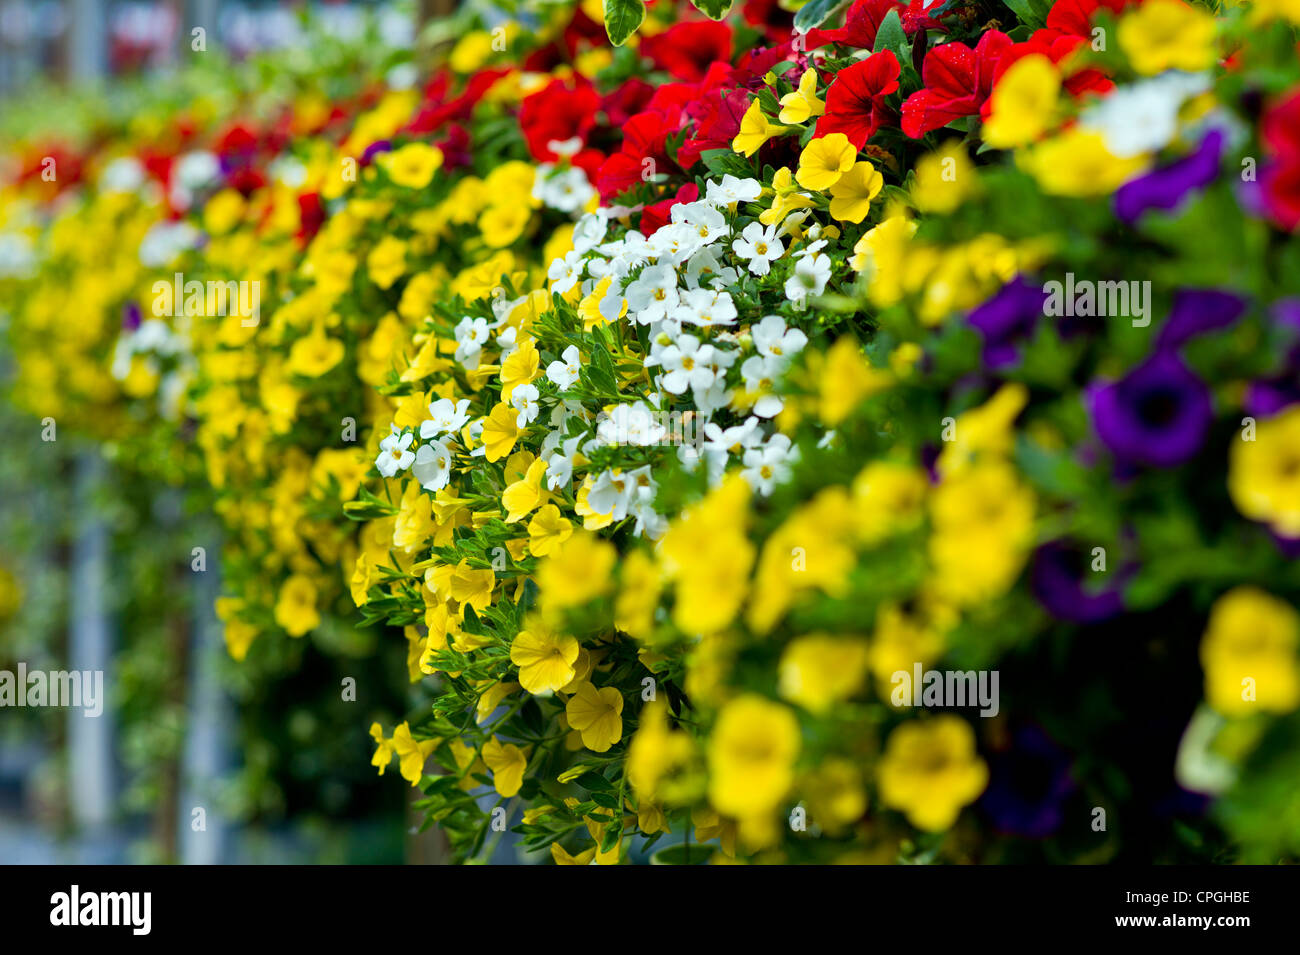 Fresh spring flowers and hanging plants for sale at a small town nursery. - Stock Image